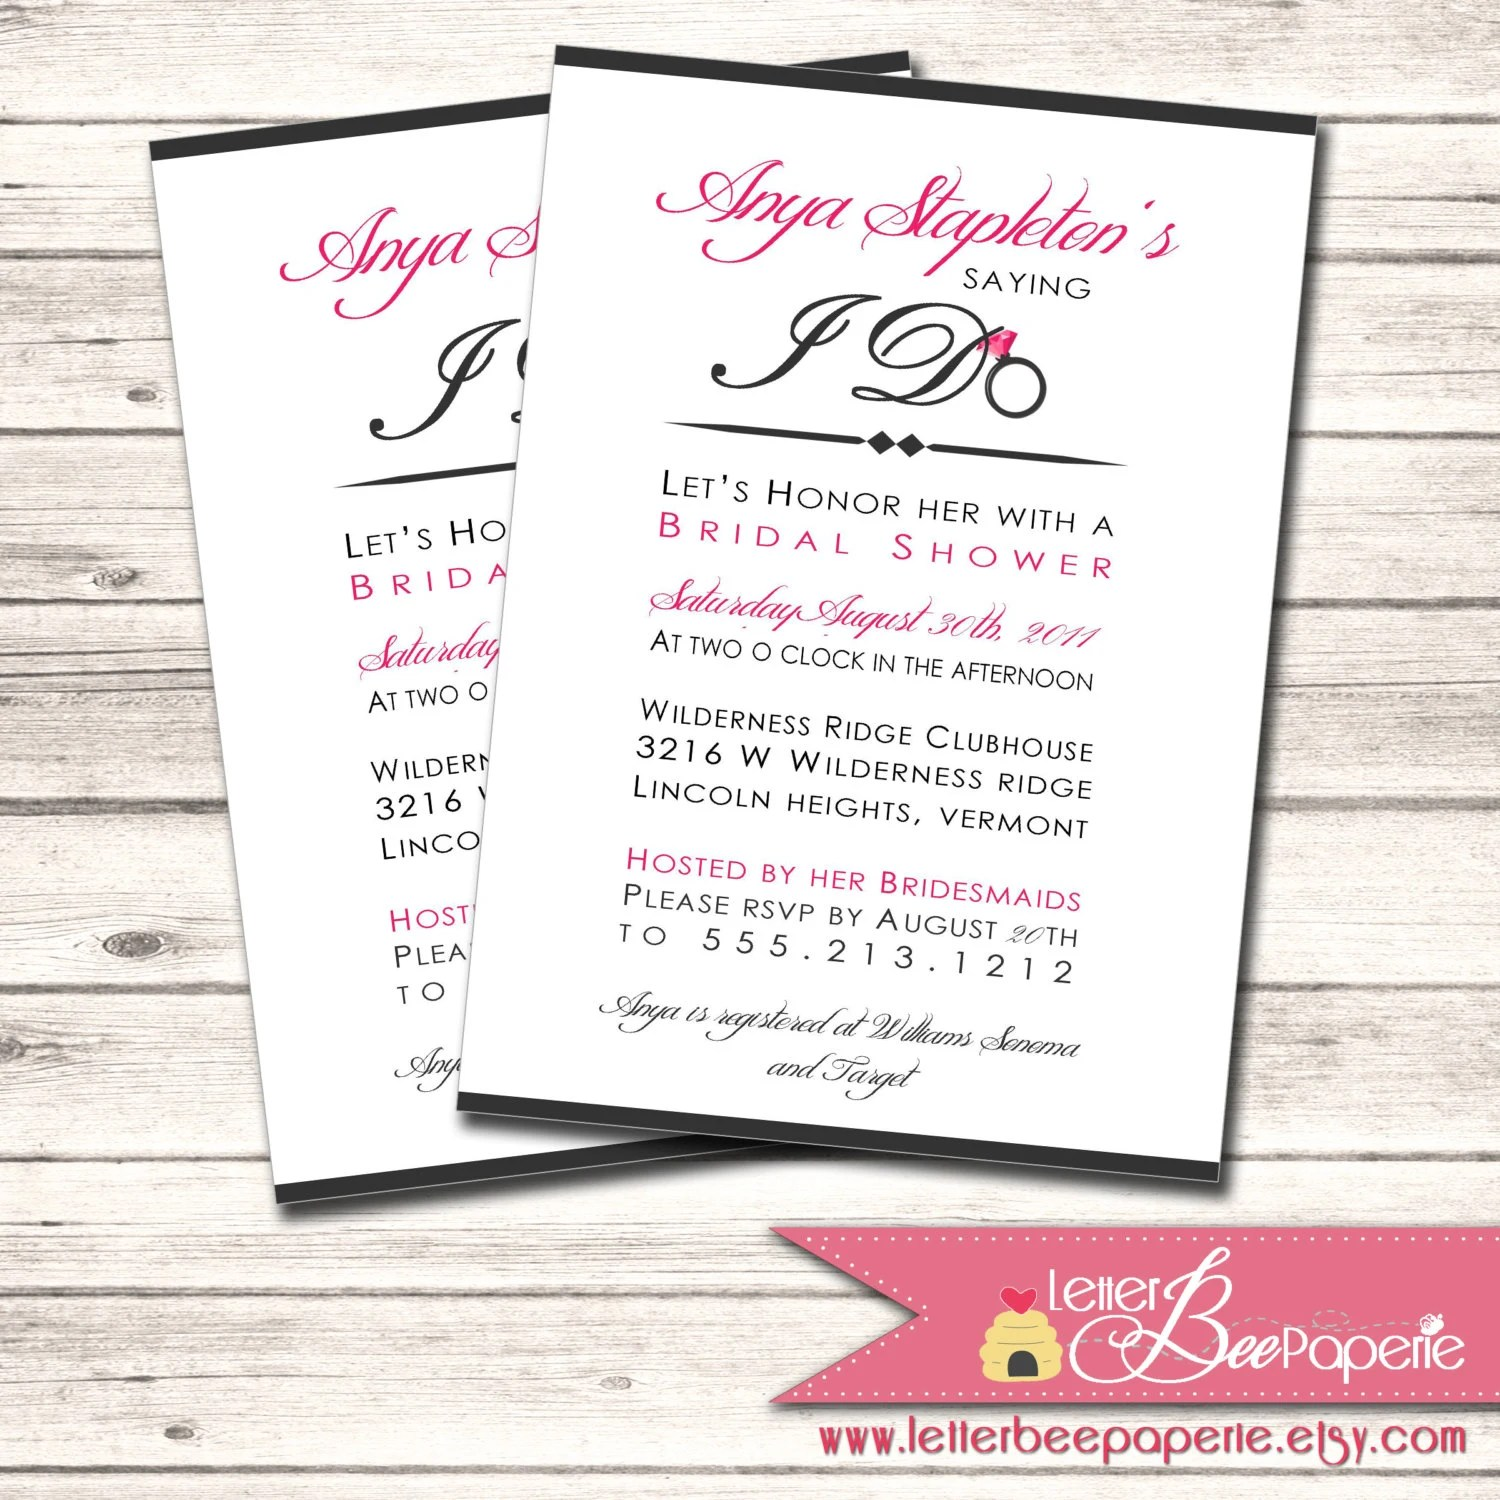 Order Personalized Invitations Online